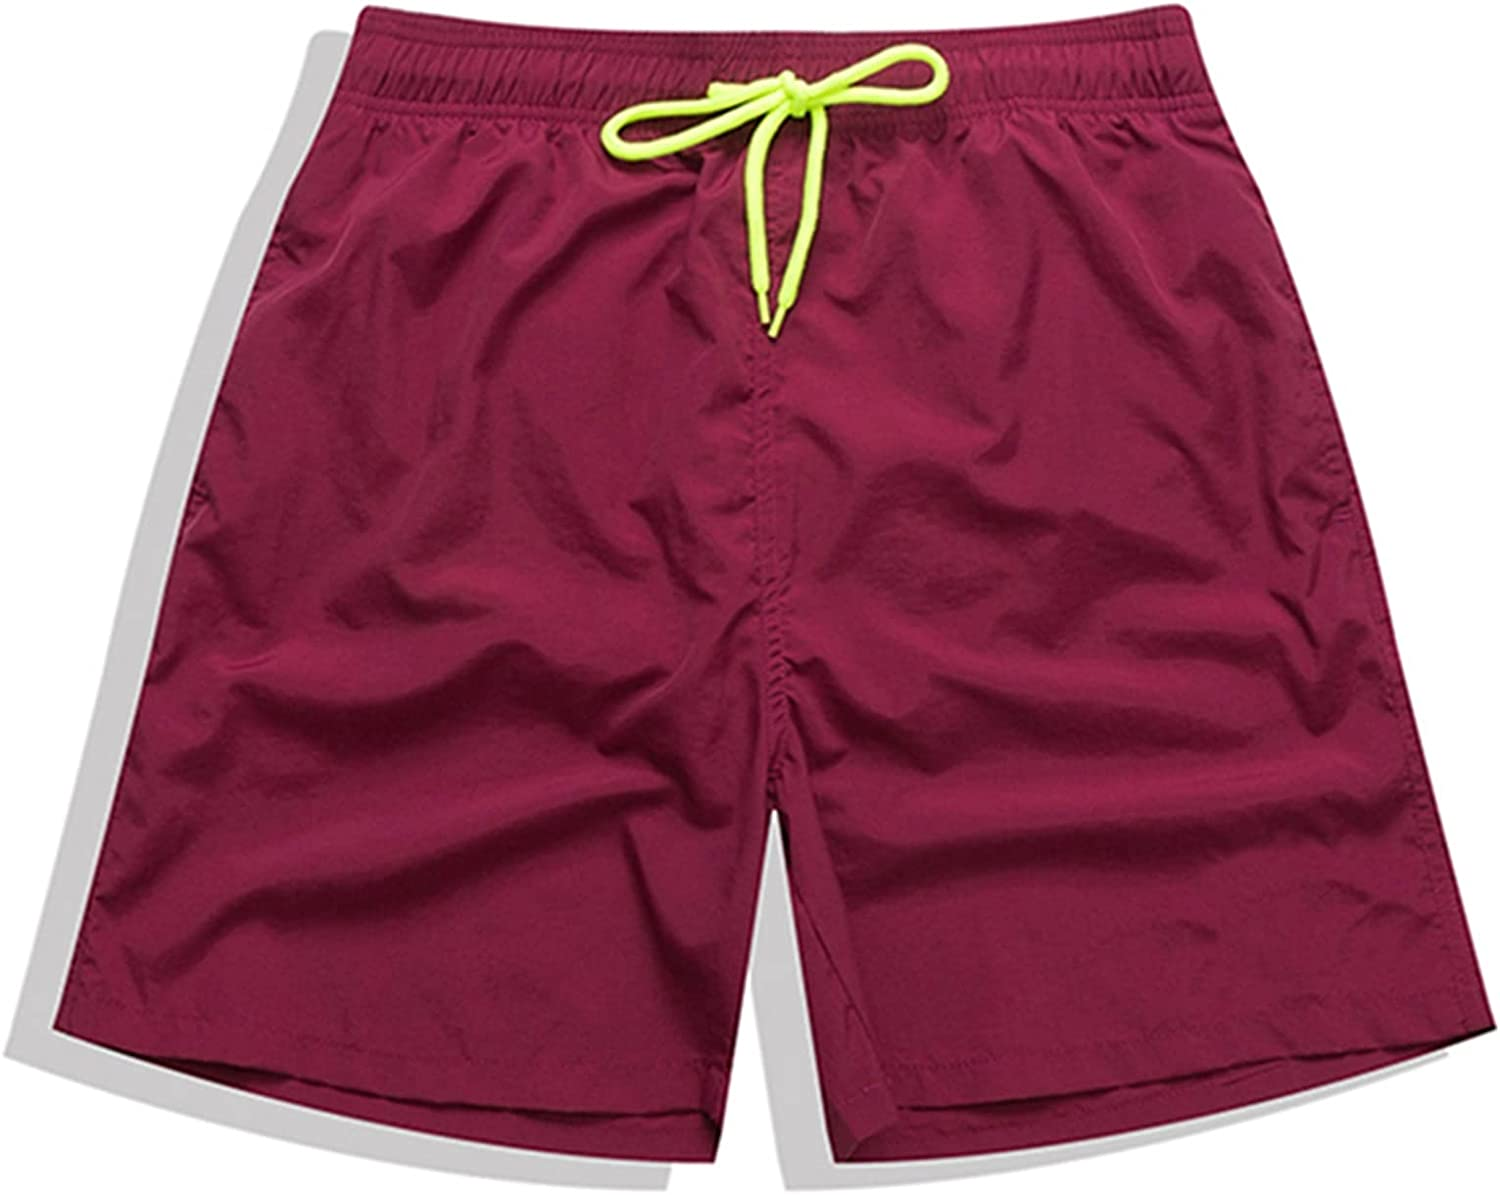 TL TONGLING Mens Swim Trunks Men Board Shorts Swimming Trunks Running Swimsuit Beach Surfing Boardshort Sports Short Plus Size (Color : Wine red, Size : 4XL)